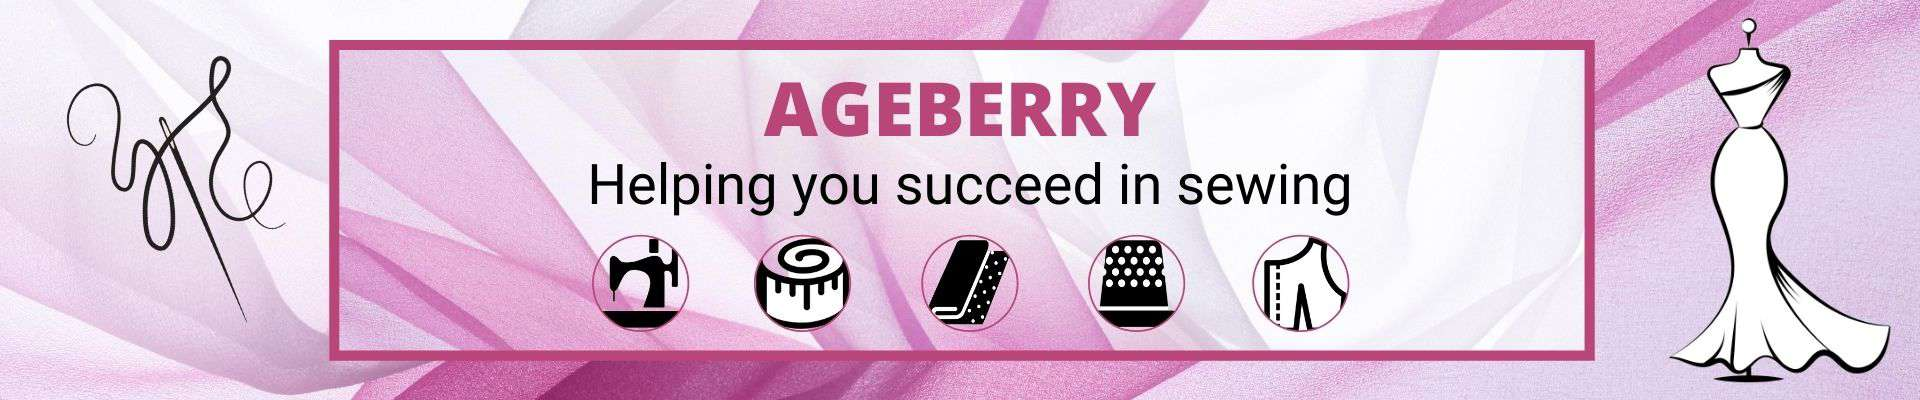 ageberry sewing blog